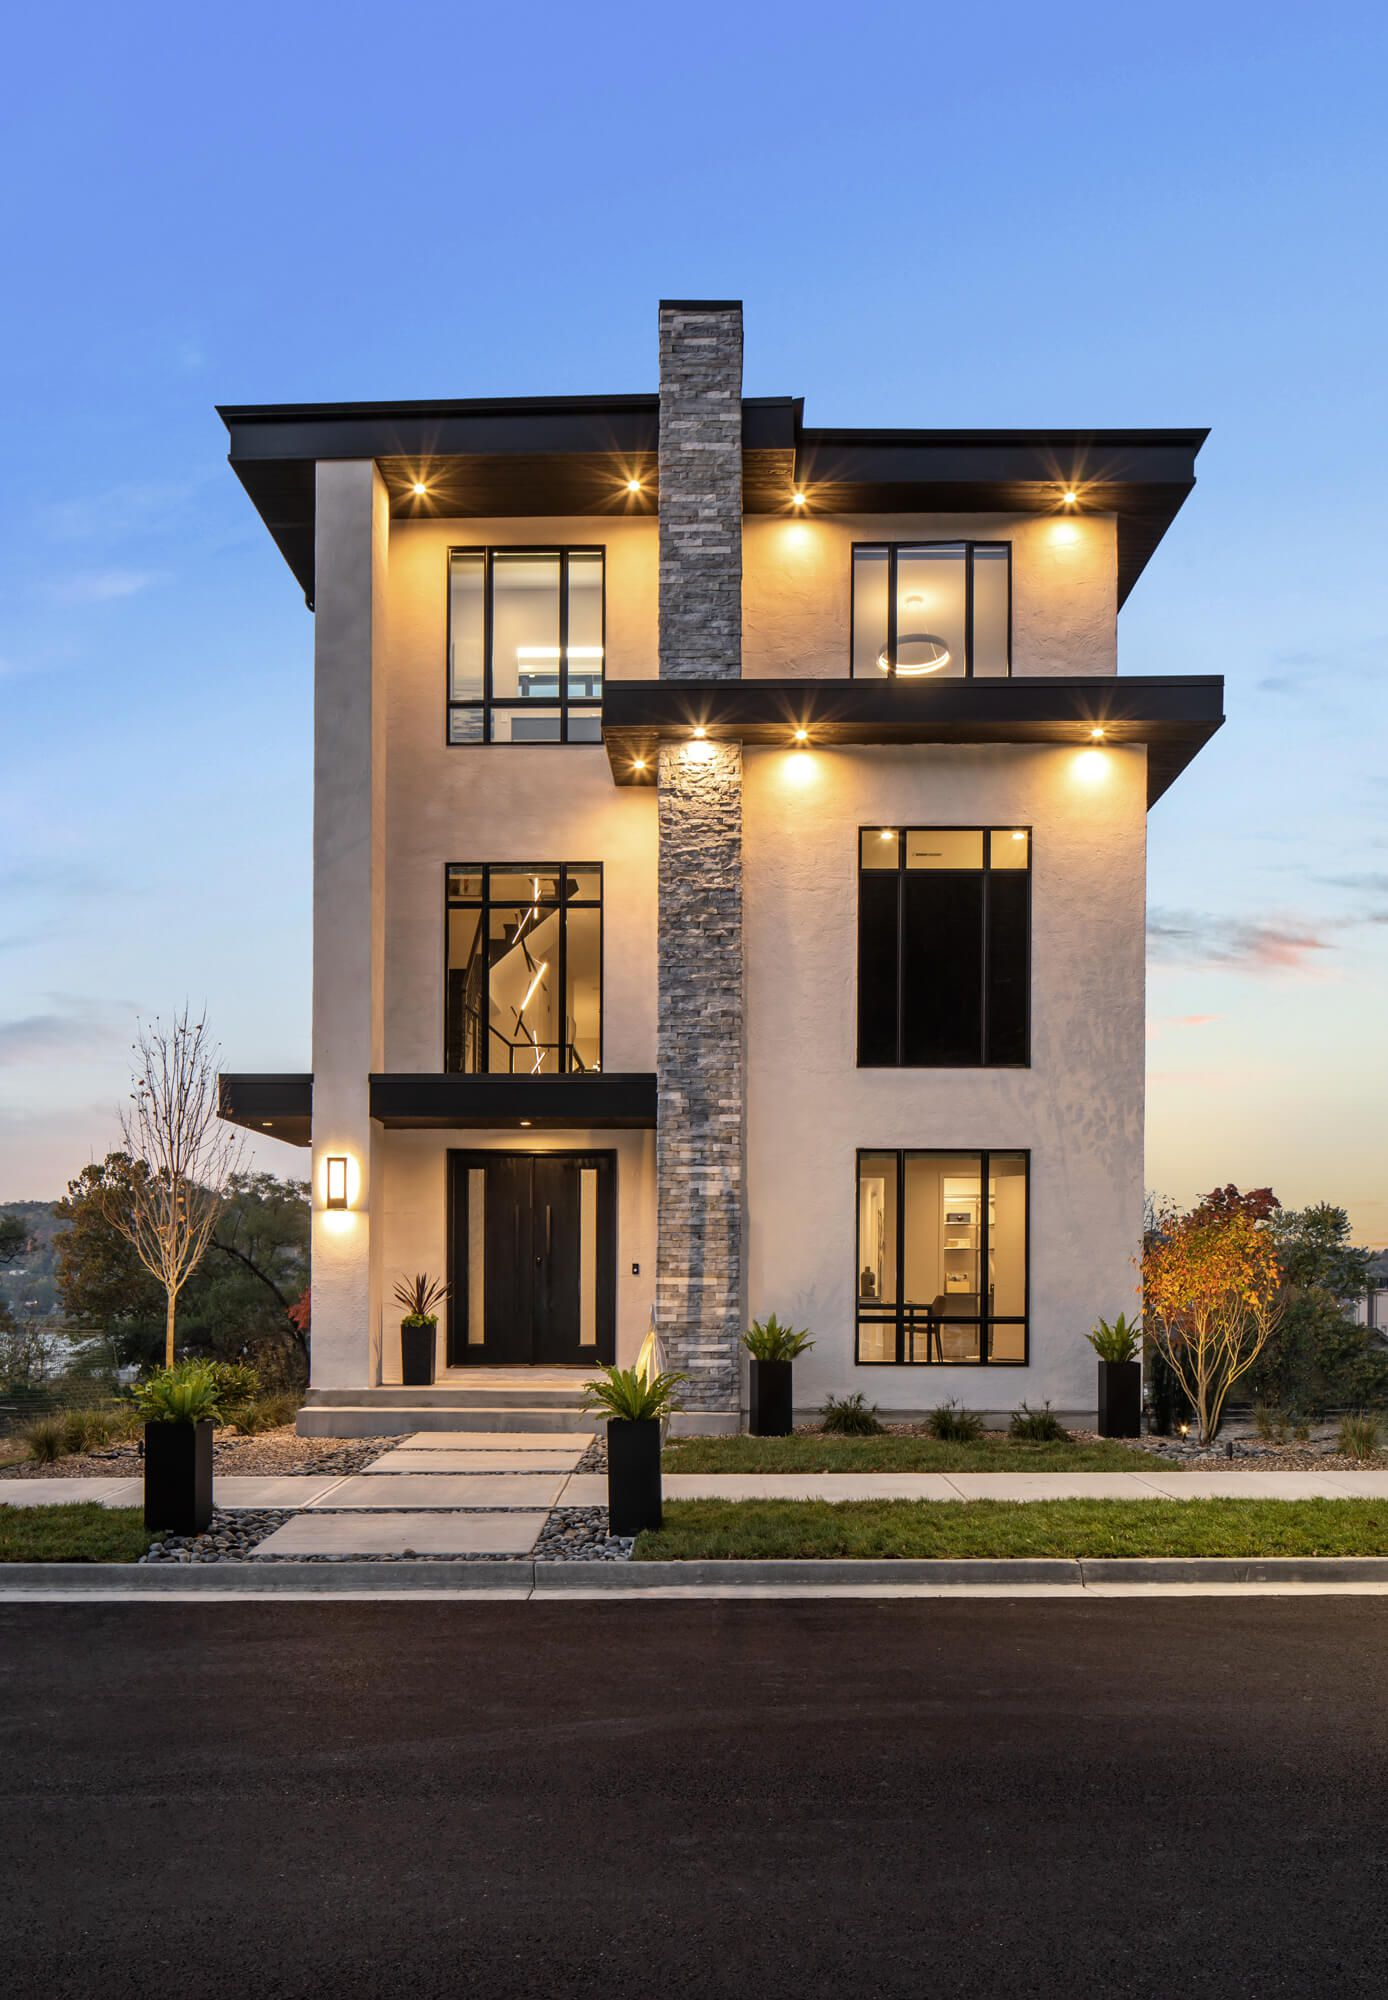 Exterior of contemporary home built in Cincinnati and featured at Homearama 2020. Interior design by Interior Design, RM Interiors.